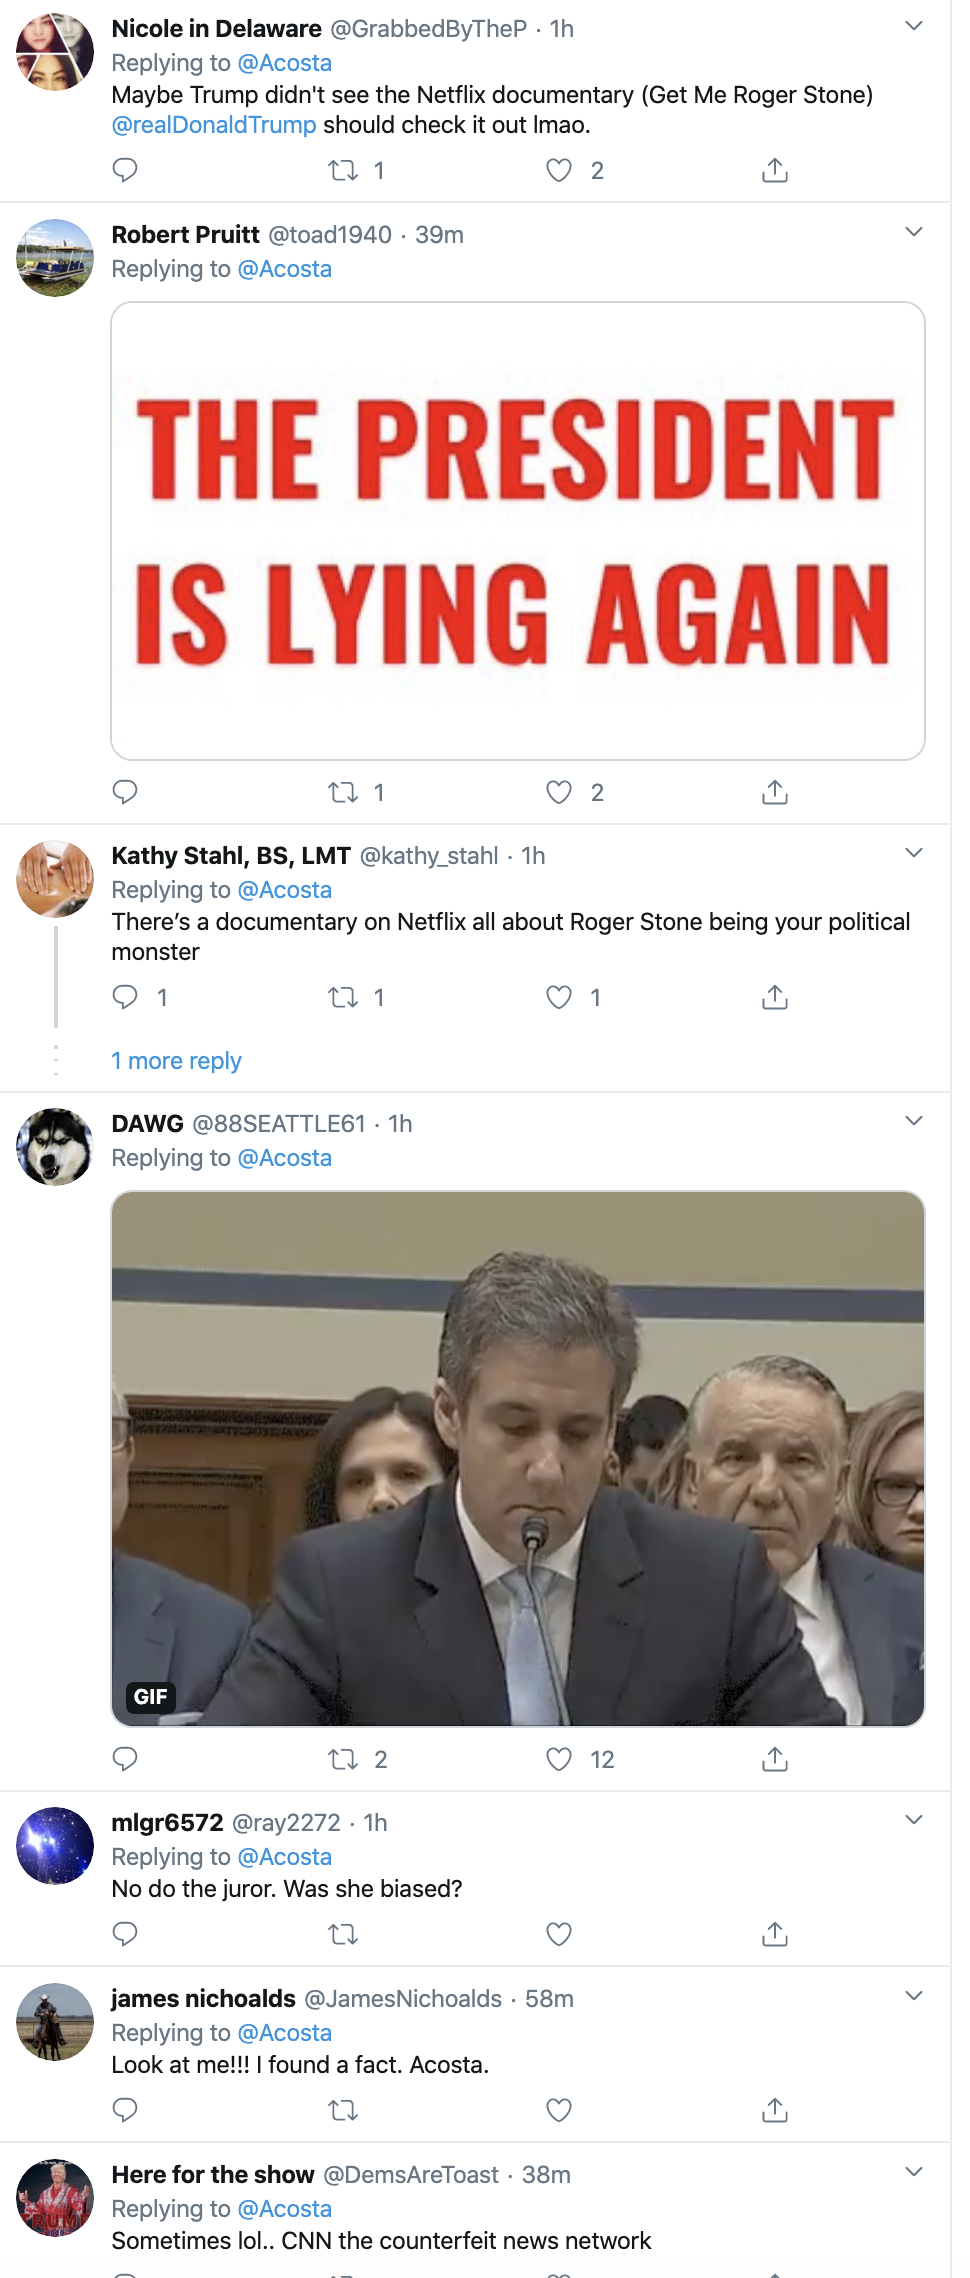 Screen-Shot-2020-02-25-at-3.19.24-PM Jim Acosta Busts Trump In A Major Lie On Twitter Corruption Crime Featured Politics Top Stories